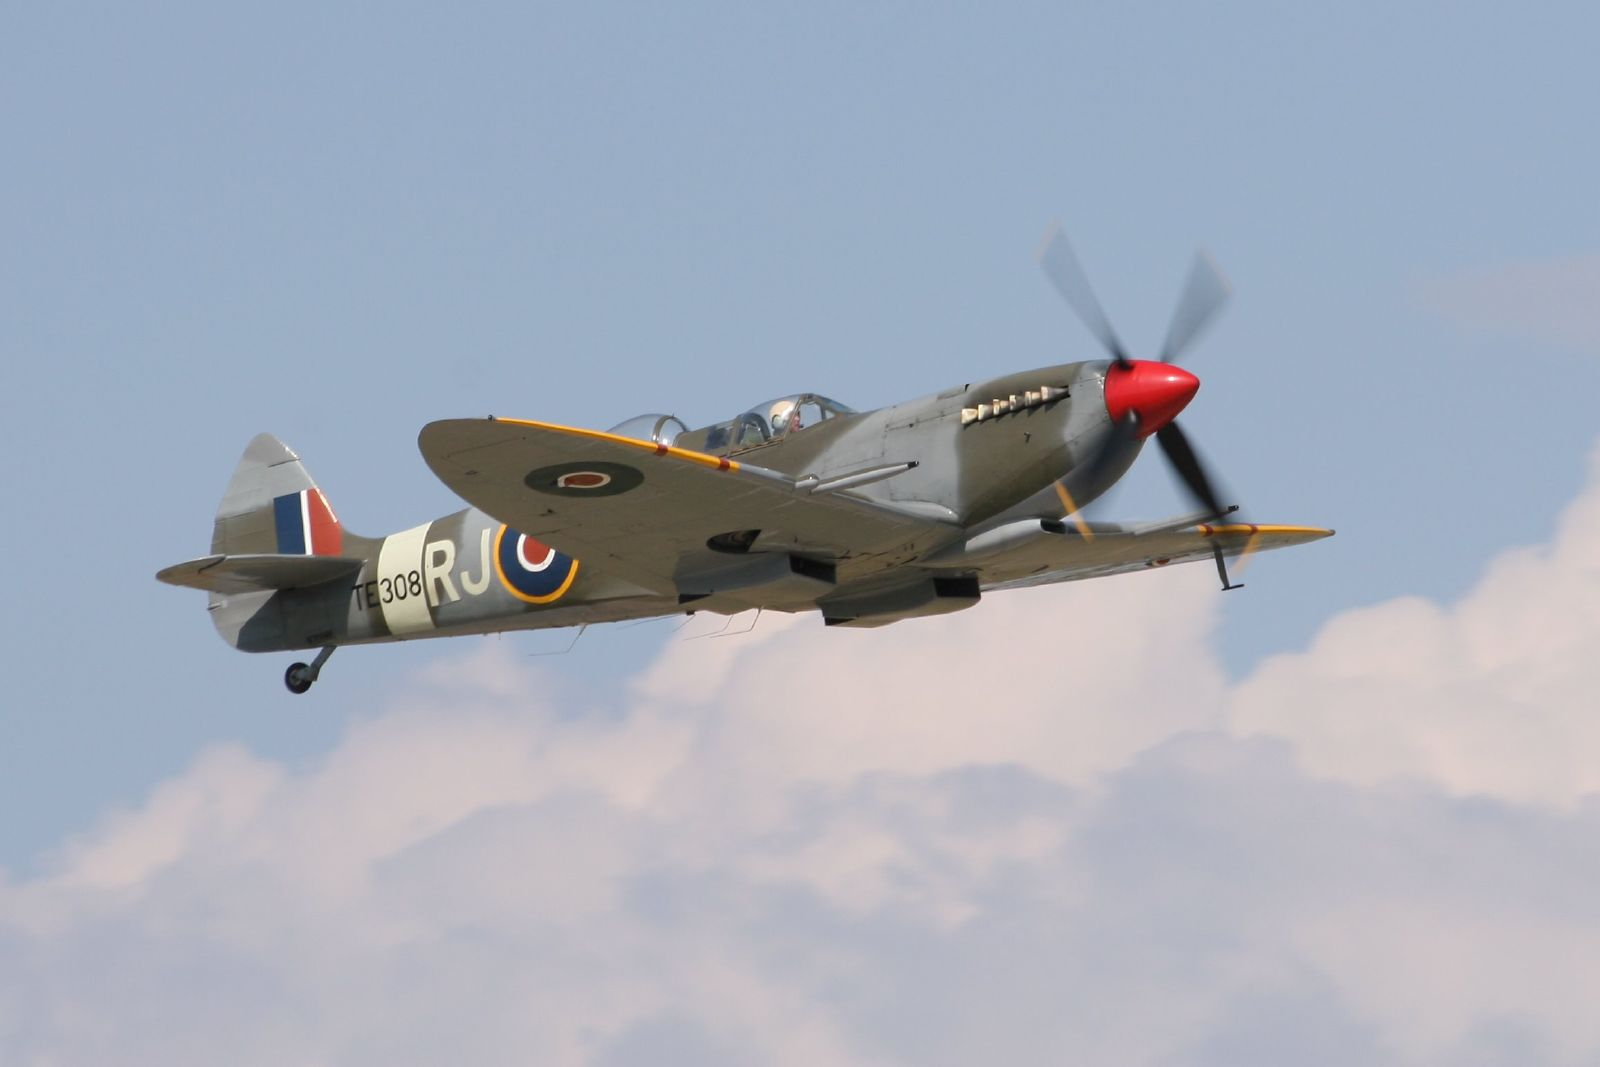 Spitfire T.9 TE308 in 2007 (Photo D. Miller (CC BY 2.0))